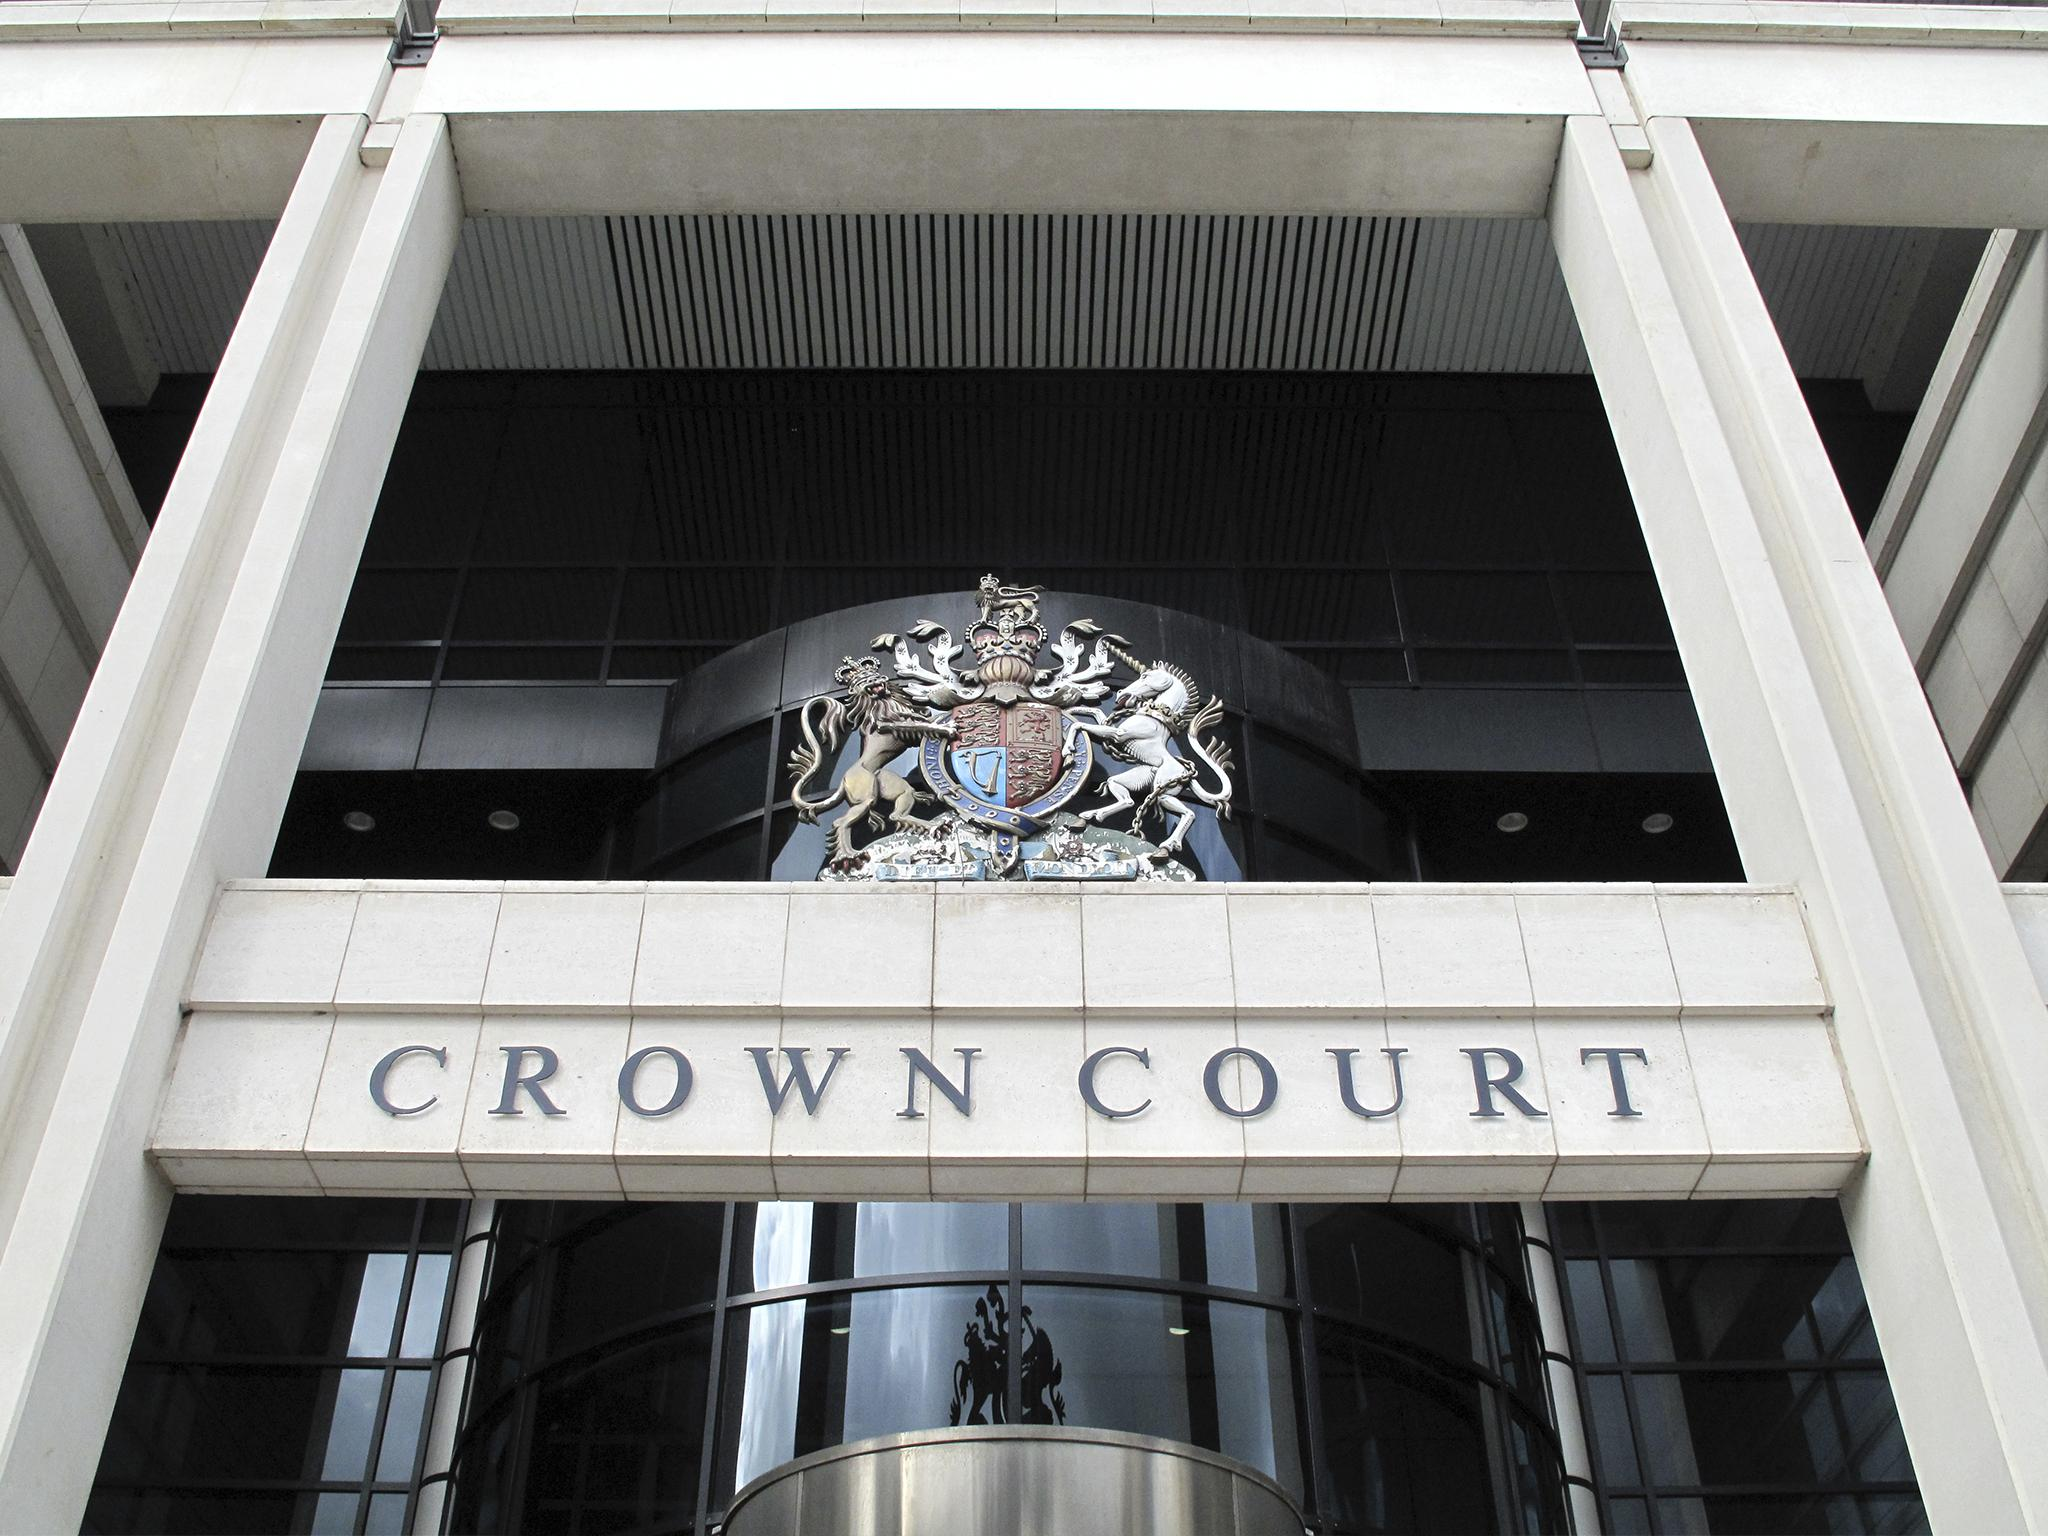 Mother 'poisoned her son to avoid him travelling to Syria' with her jihadi husband, court hears